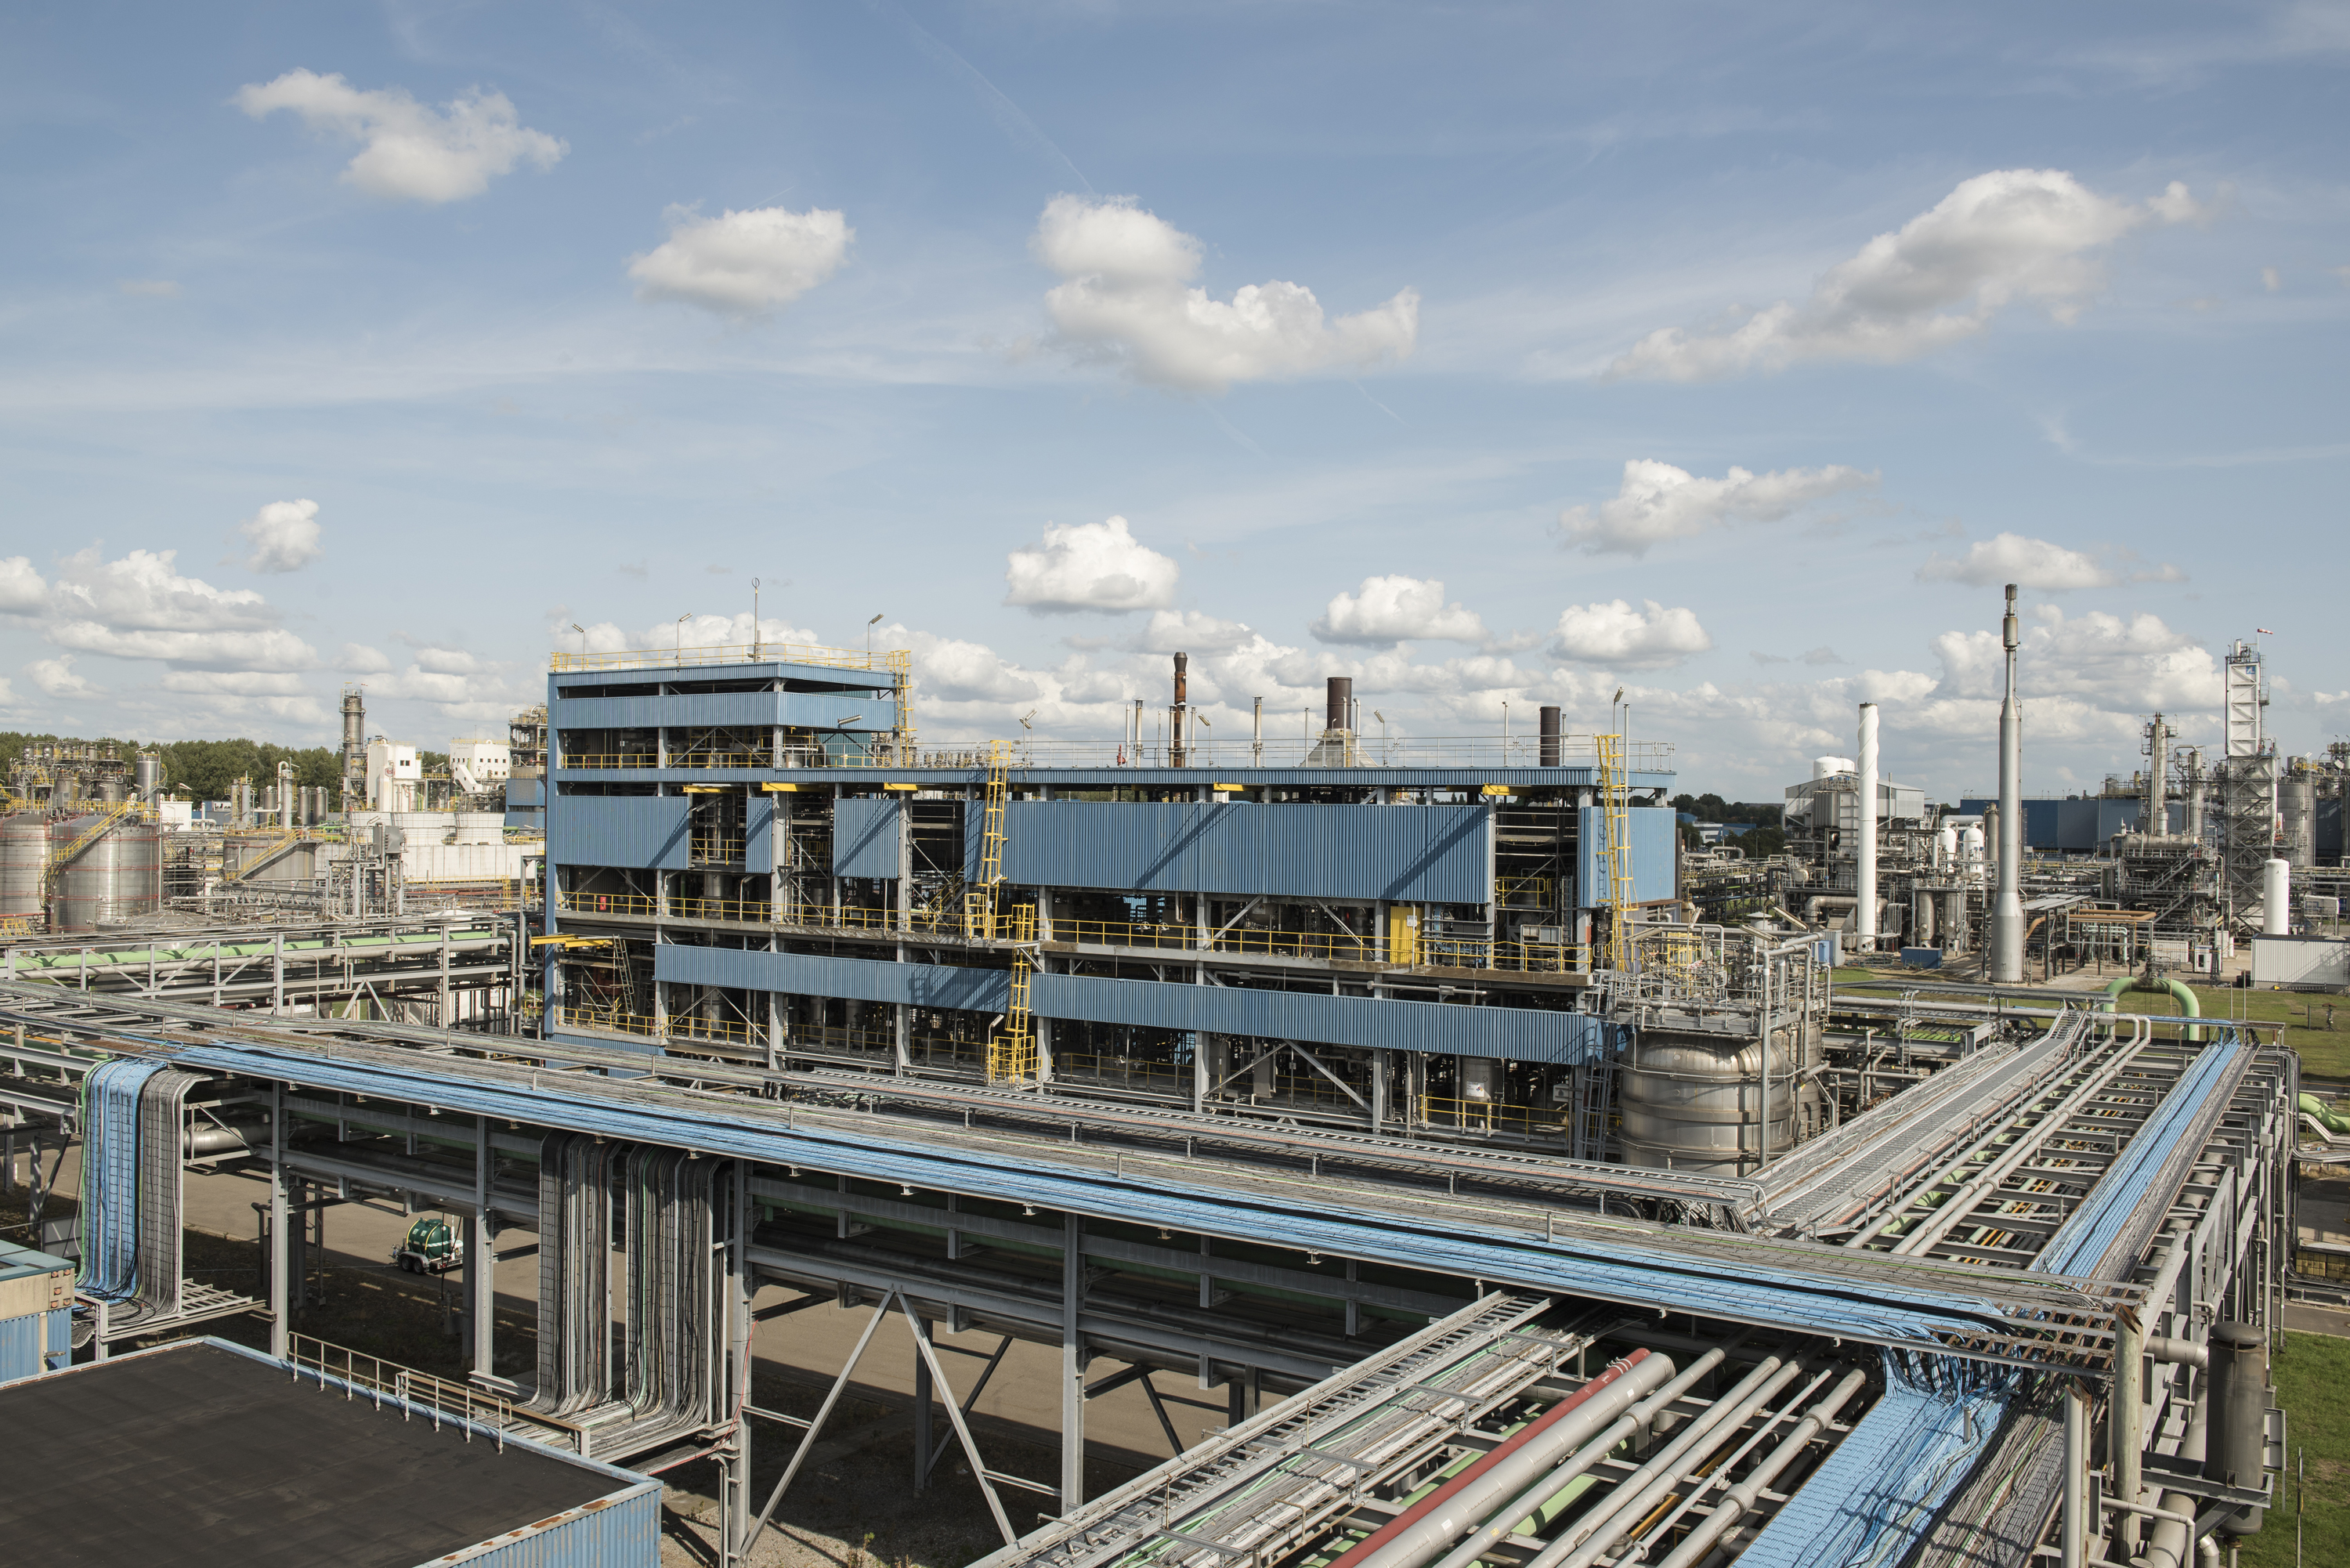 Recommissioning of SABIC's PPE operations at Bergen Op Zoom